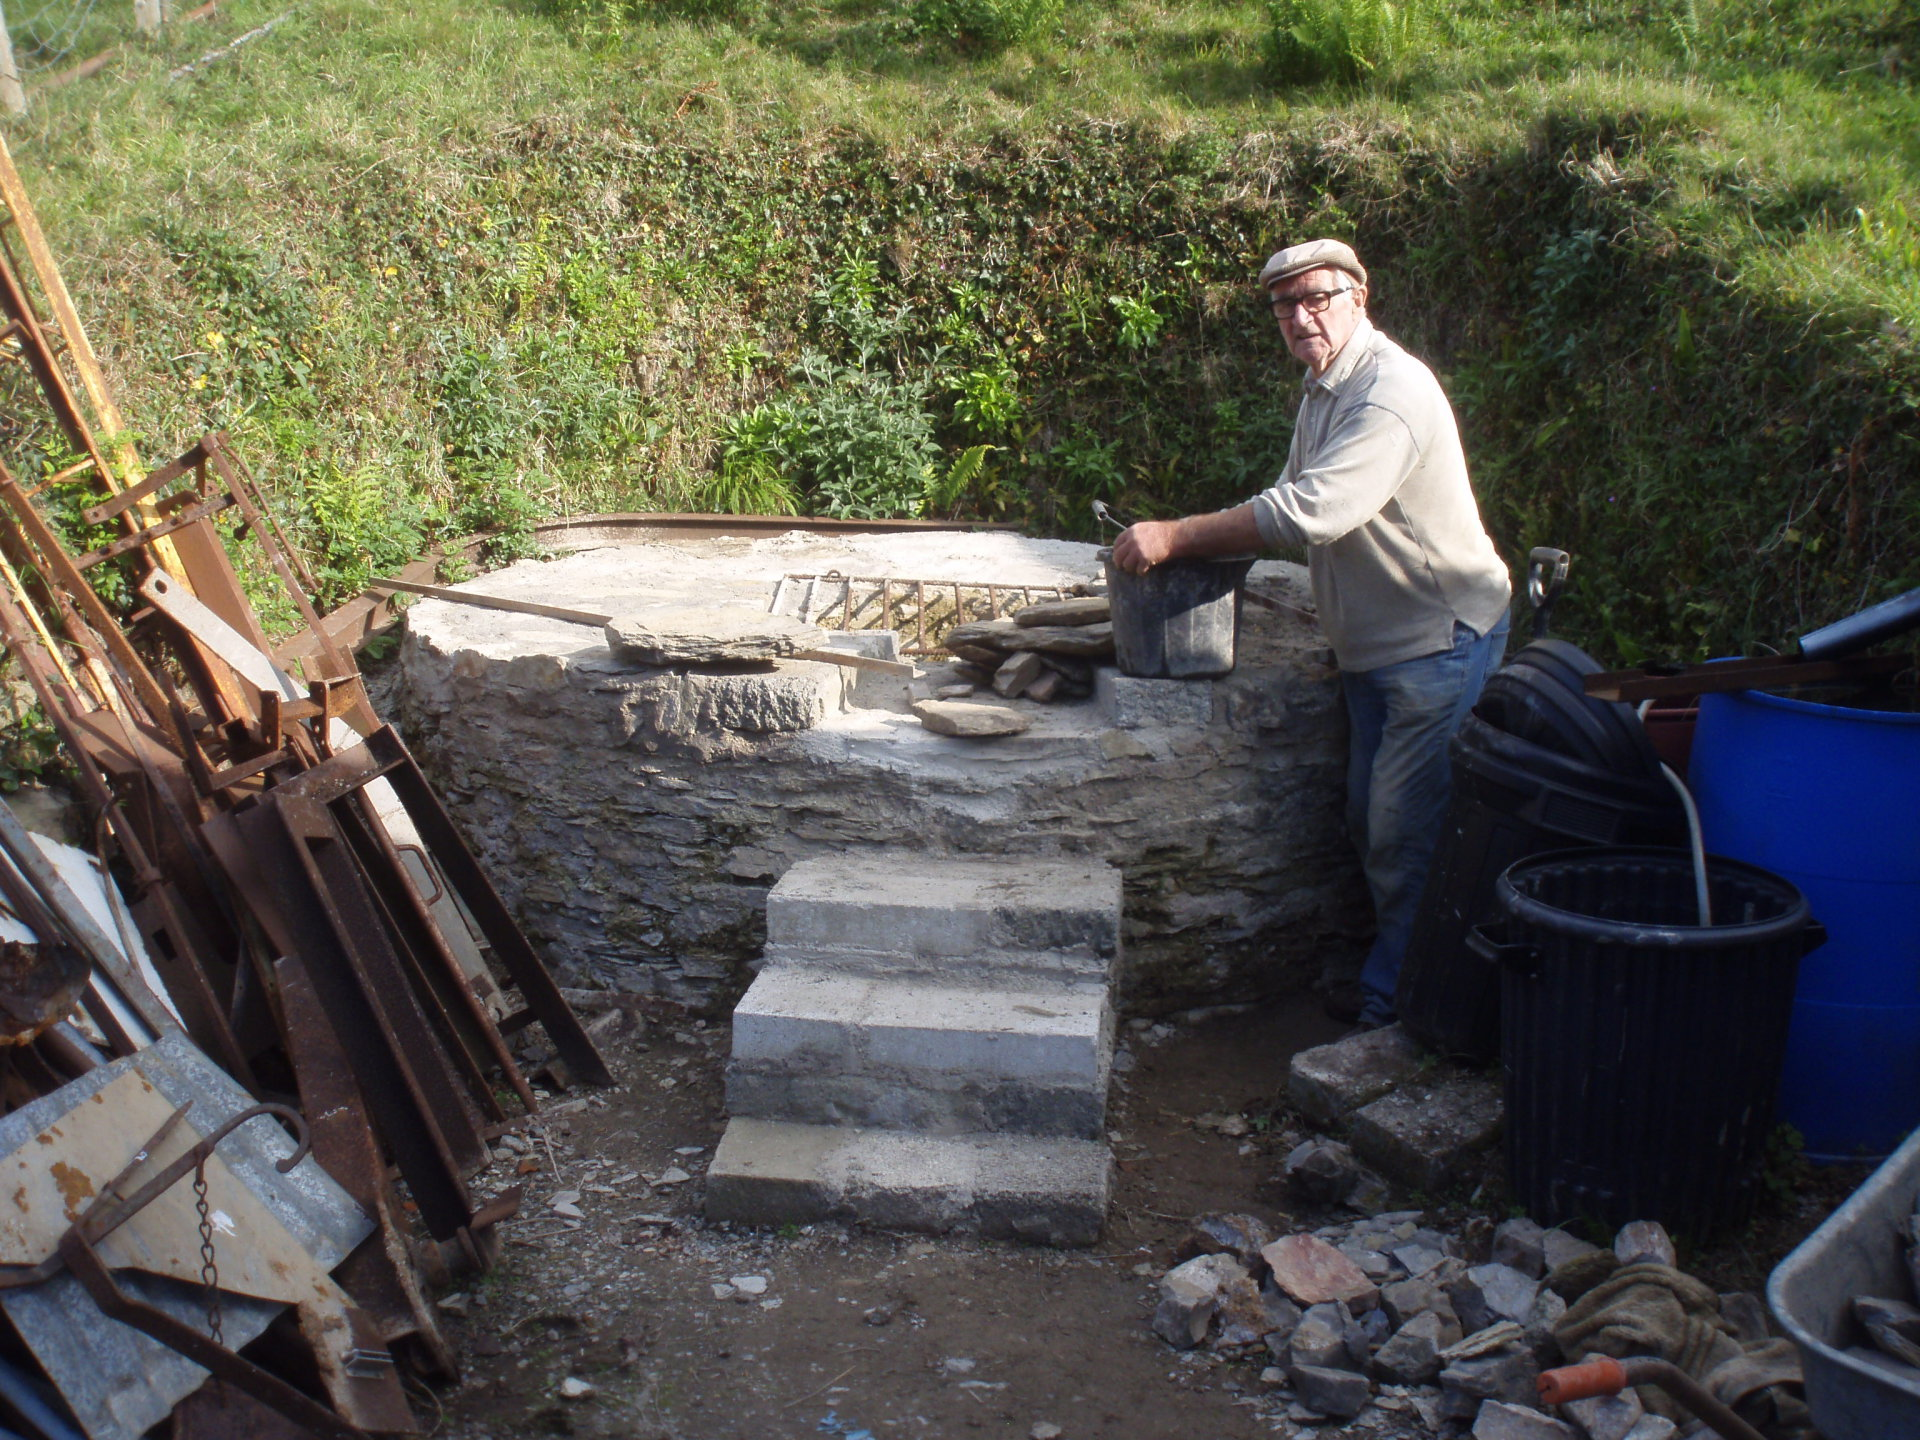 Volunteer Above ground - Combe Martin Silver Mine & Research Society